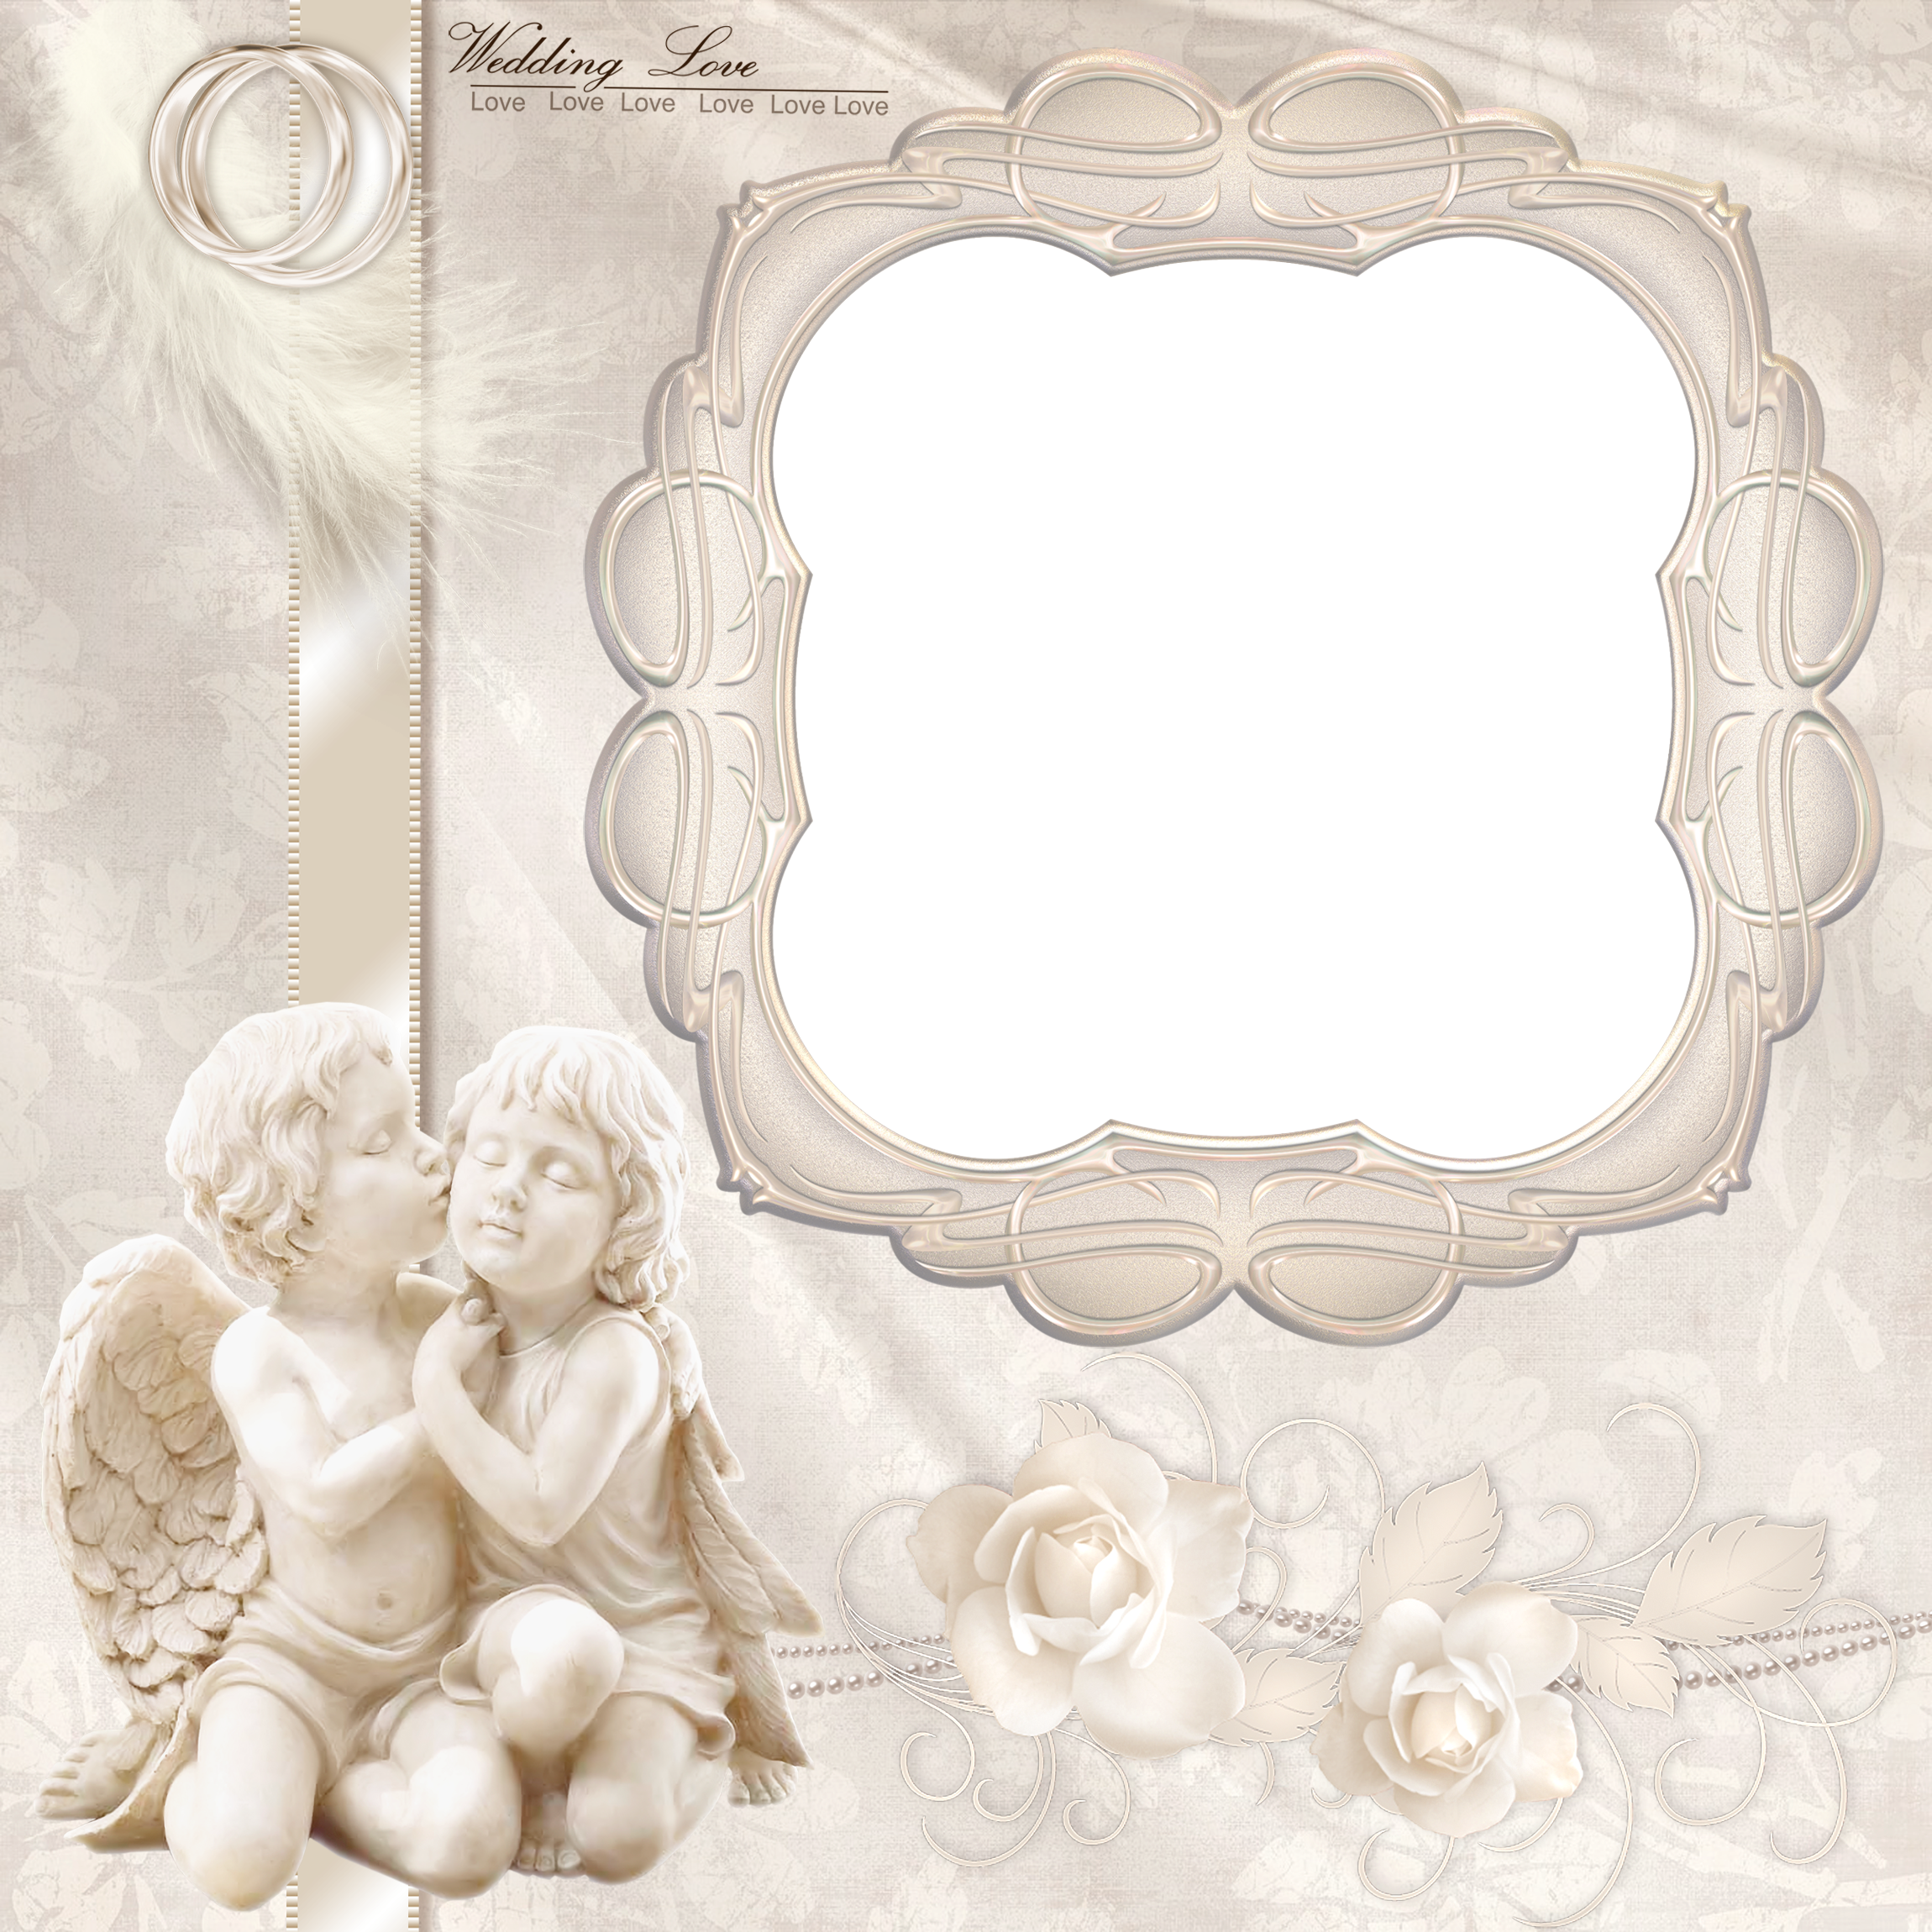 Marriage angels frames png. Transparent wedding frame with